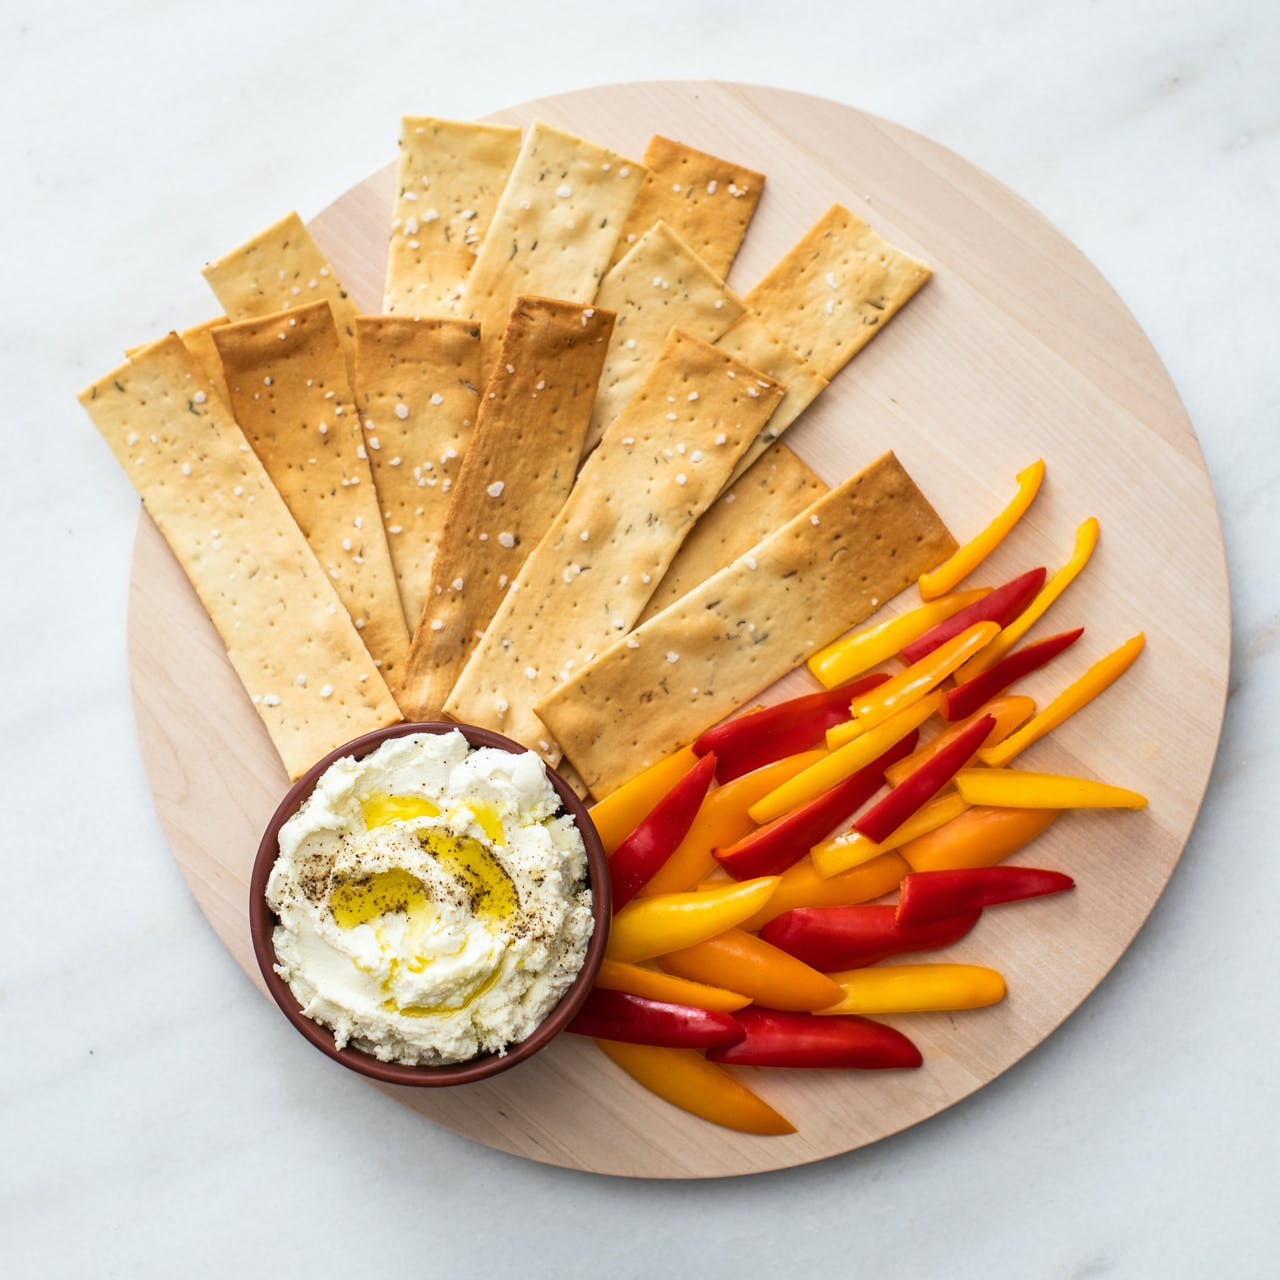 Whipped Feta with crackers and crudites